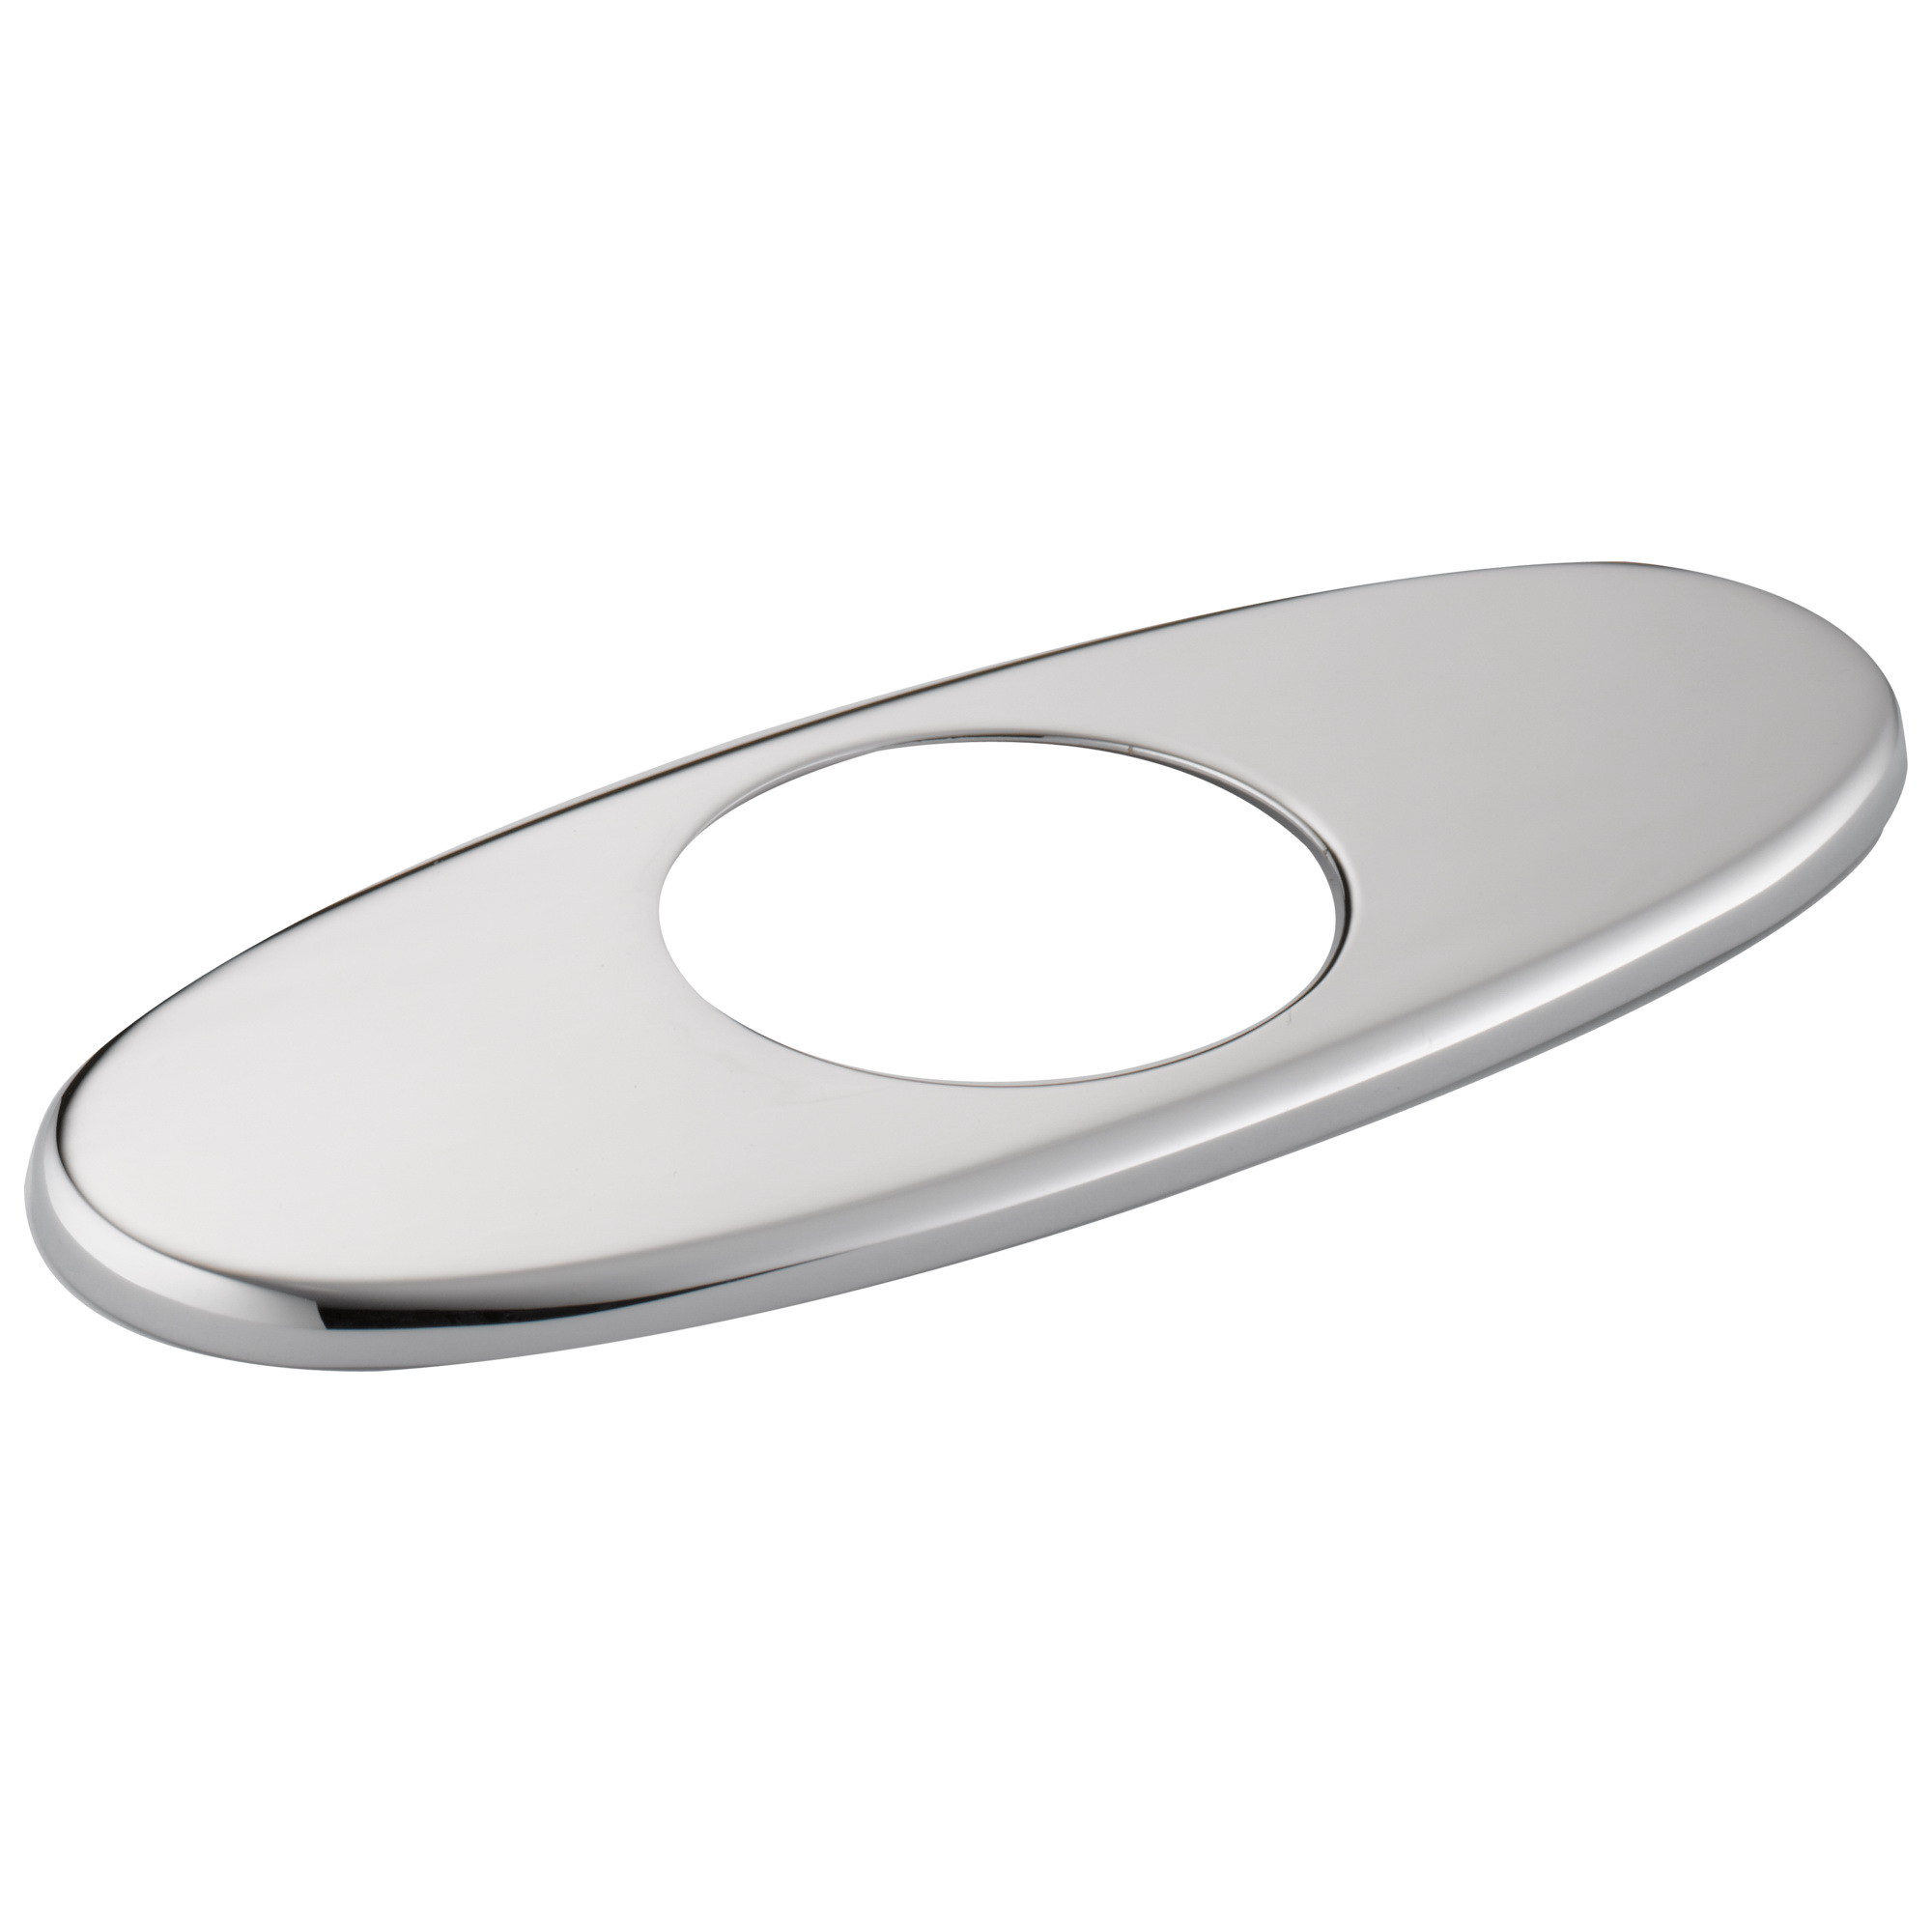 Brizo® RP54978PC Quiessence® Escutcheon, For Use With Model 65014LF 1-Handle Lavatory Faucet, 4 in, 3/16 in H, Chrome Plated, Import